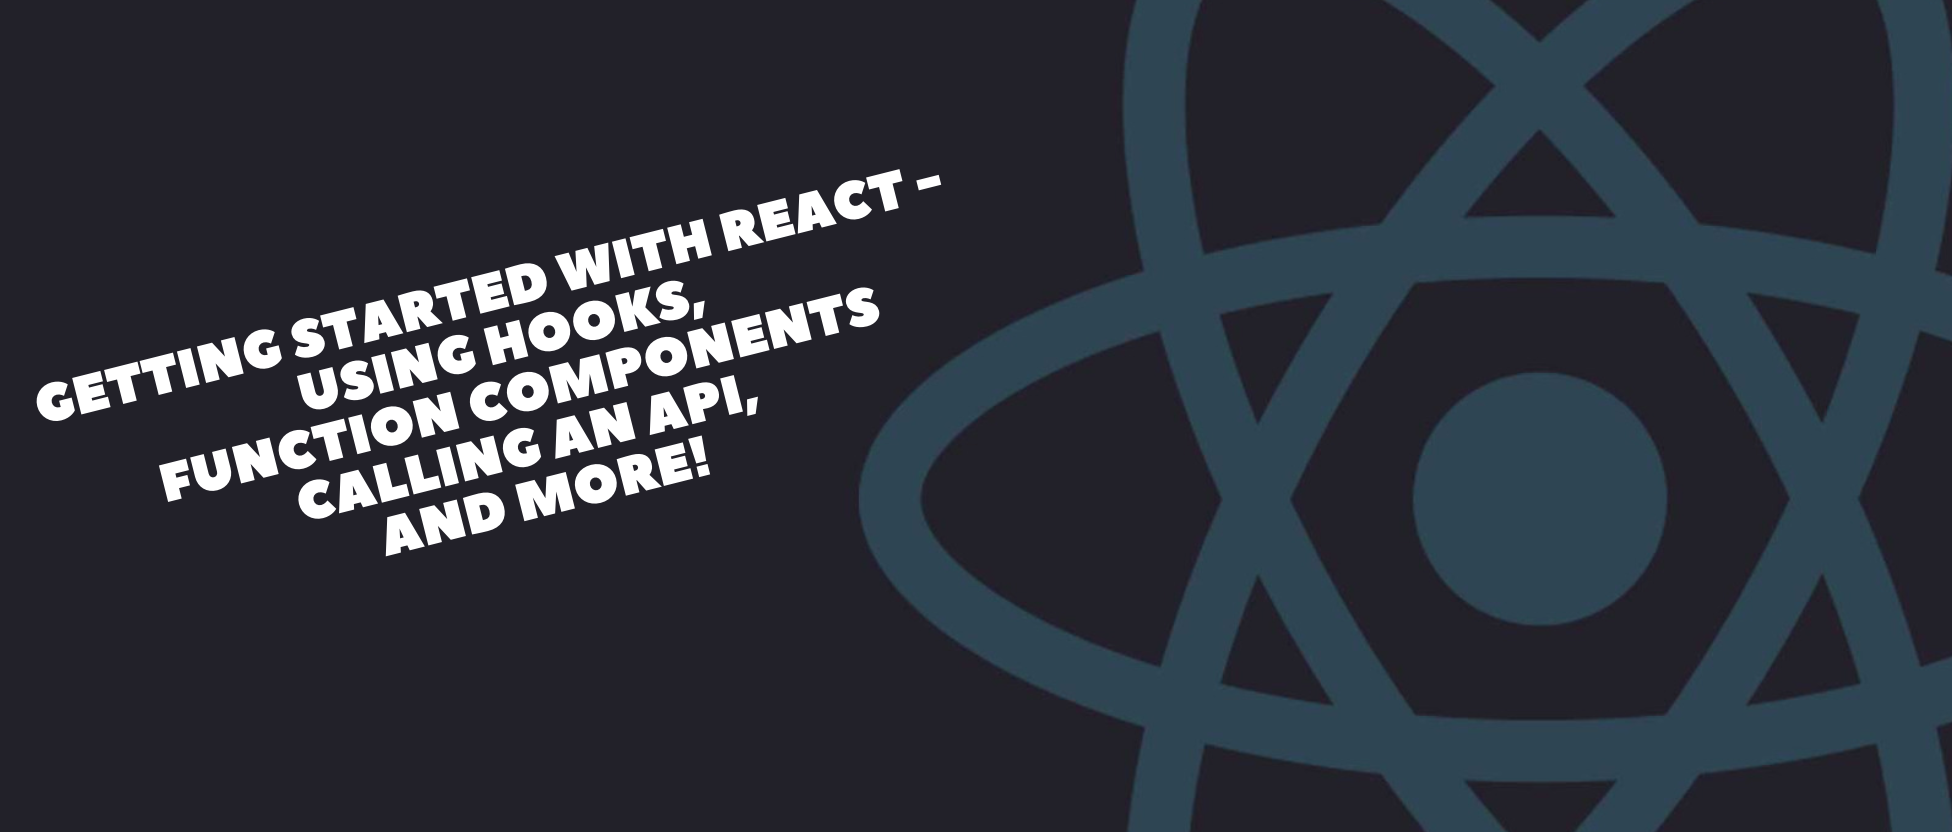 How to Get Started with React — A Modern Project-based Guide for Beginners (Including Hooks)